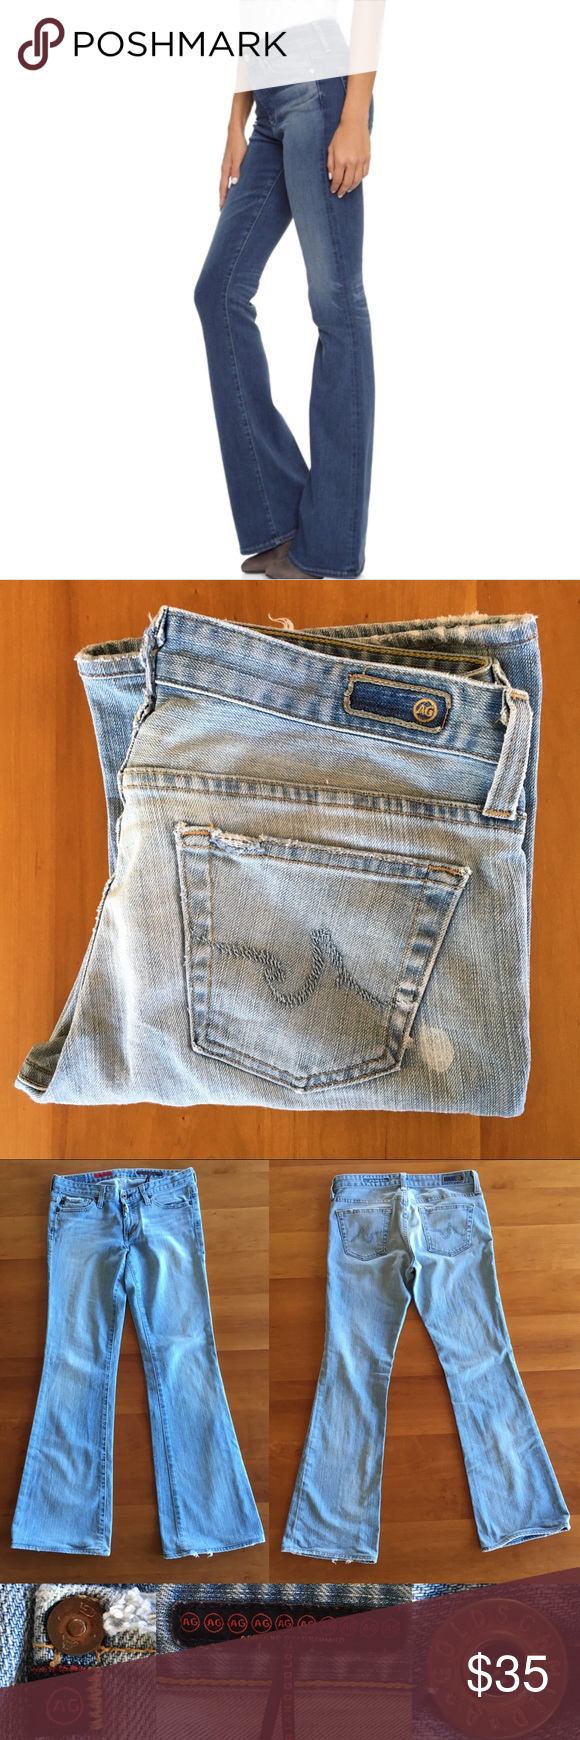 Jeans Pocket Painting Easy ; Jeans Pocket Painting